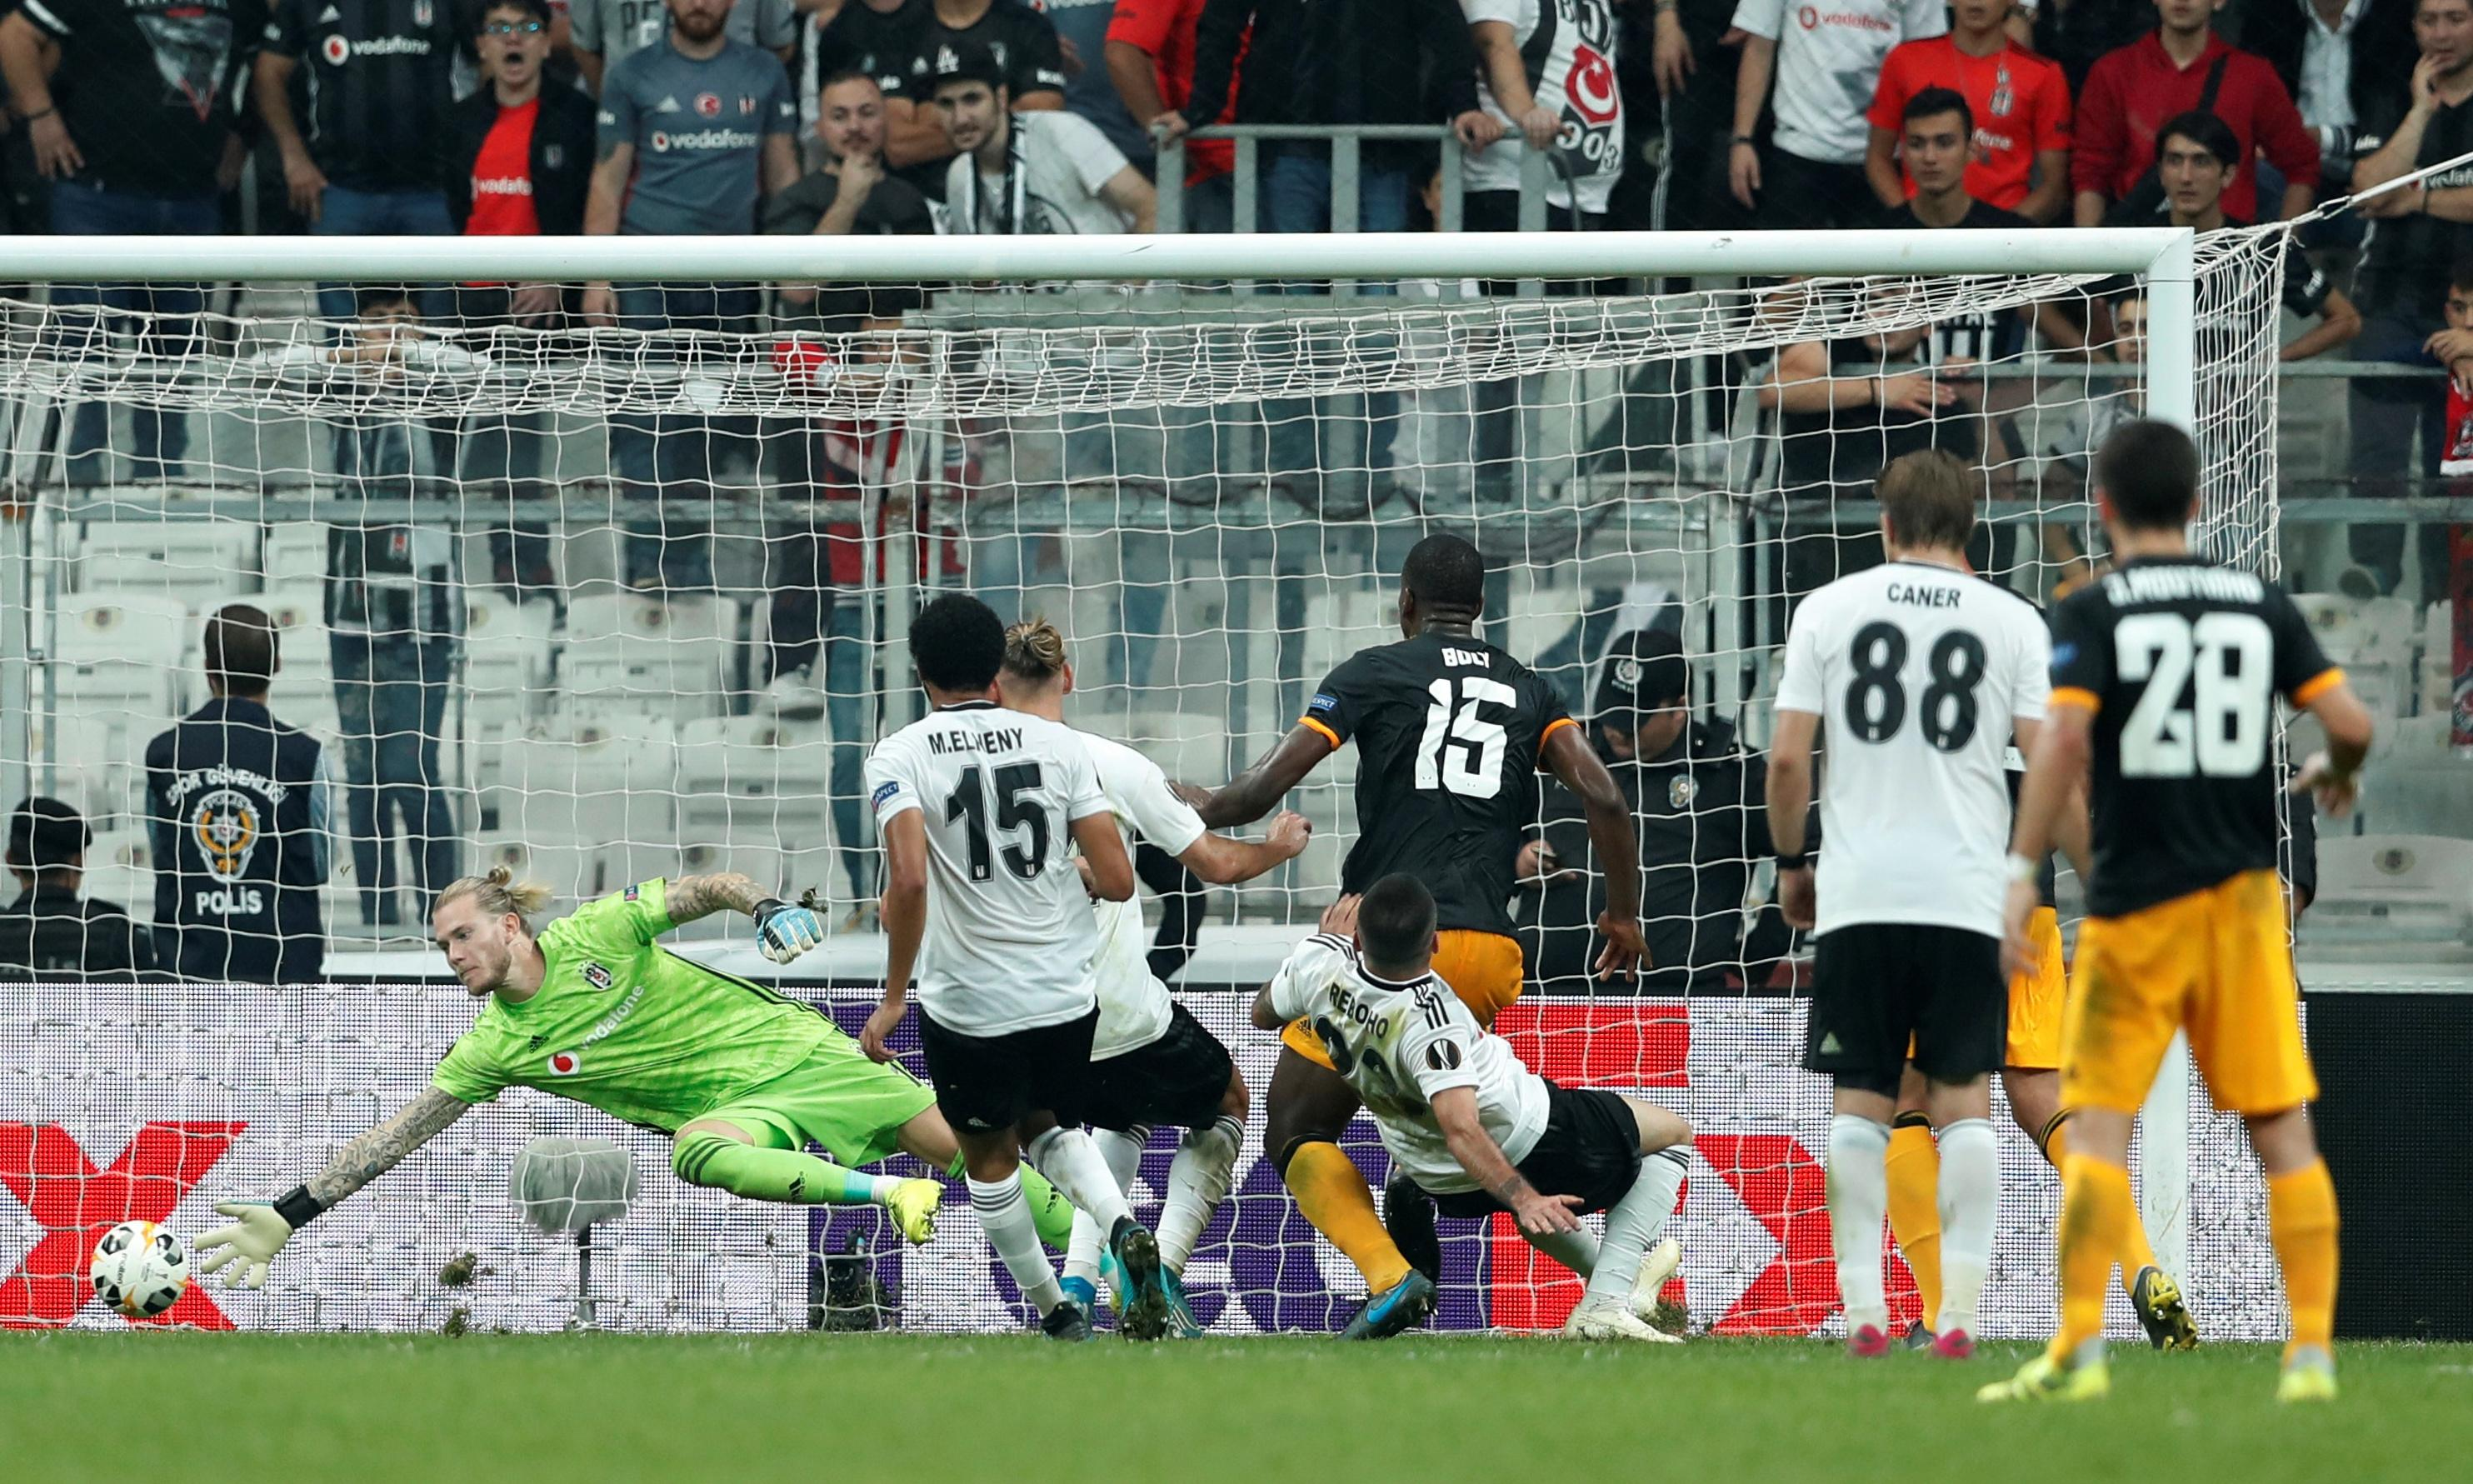 Willy Boly puts Wolves back on track with injury-time winner at Besiktas